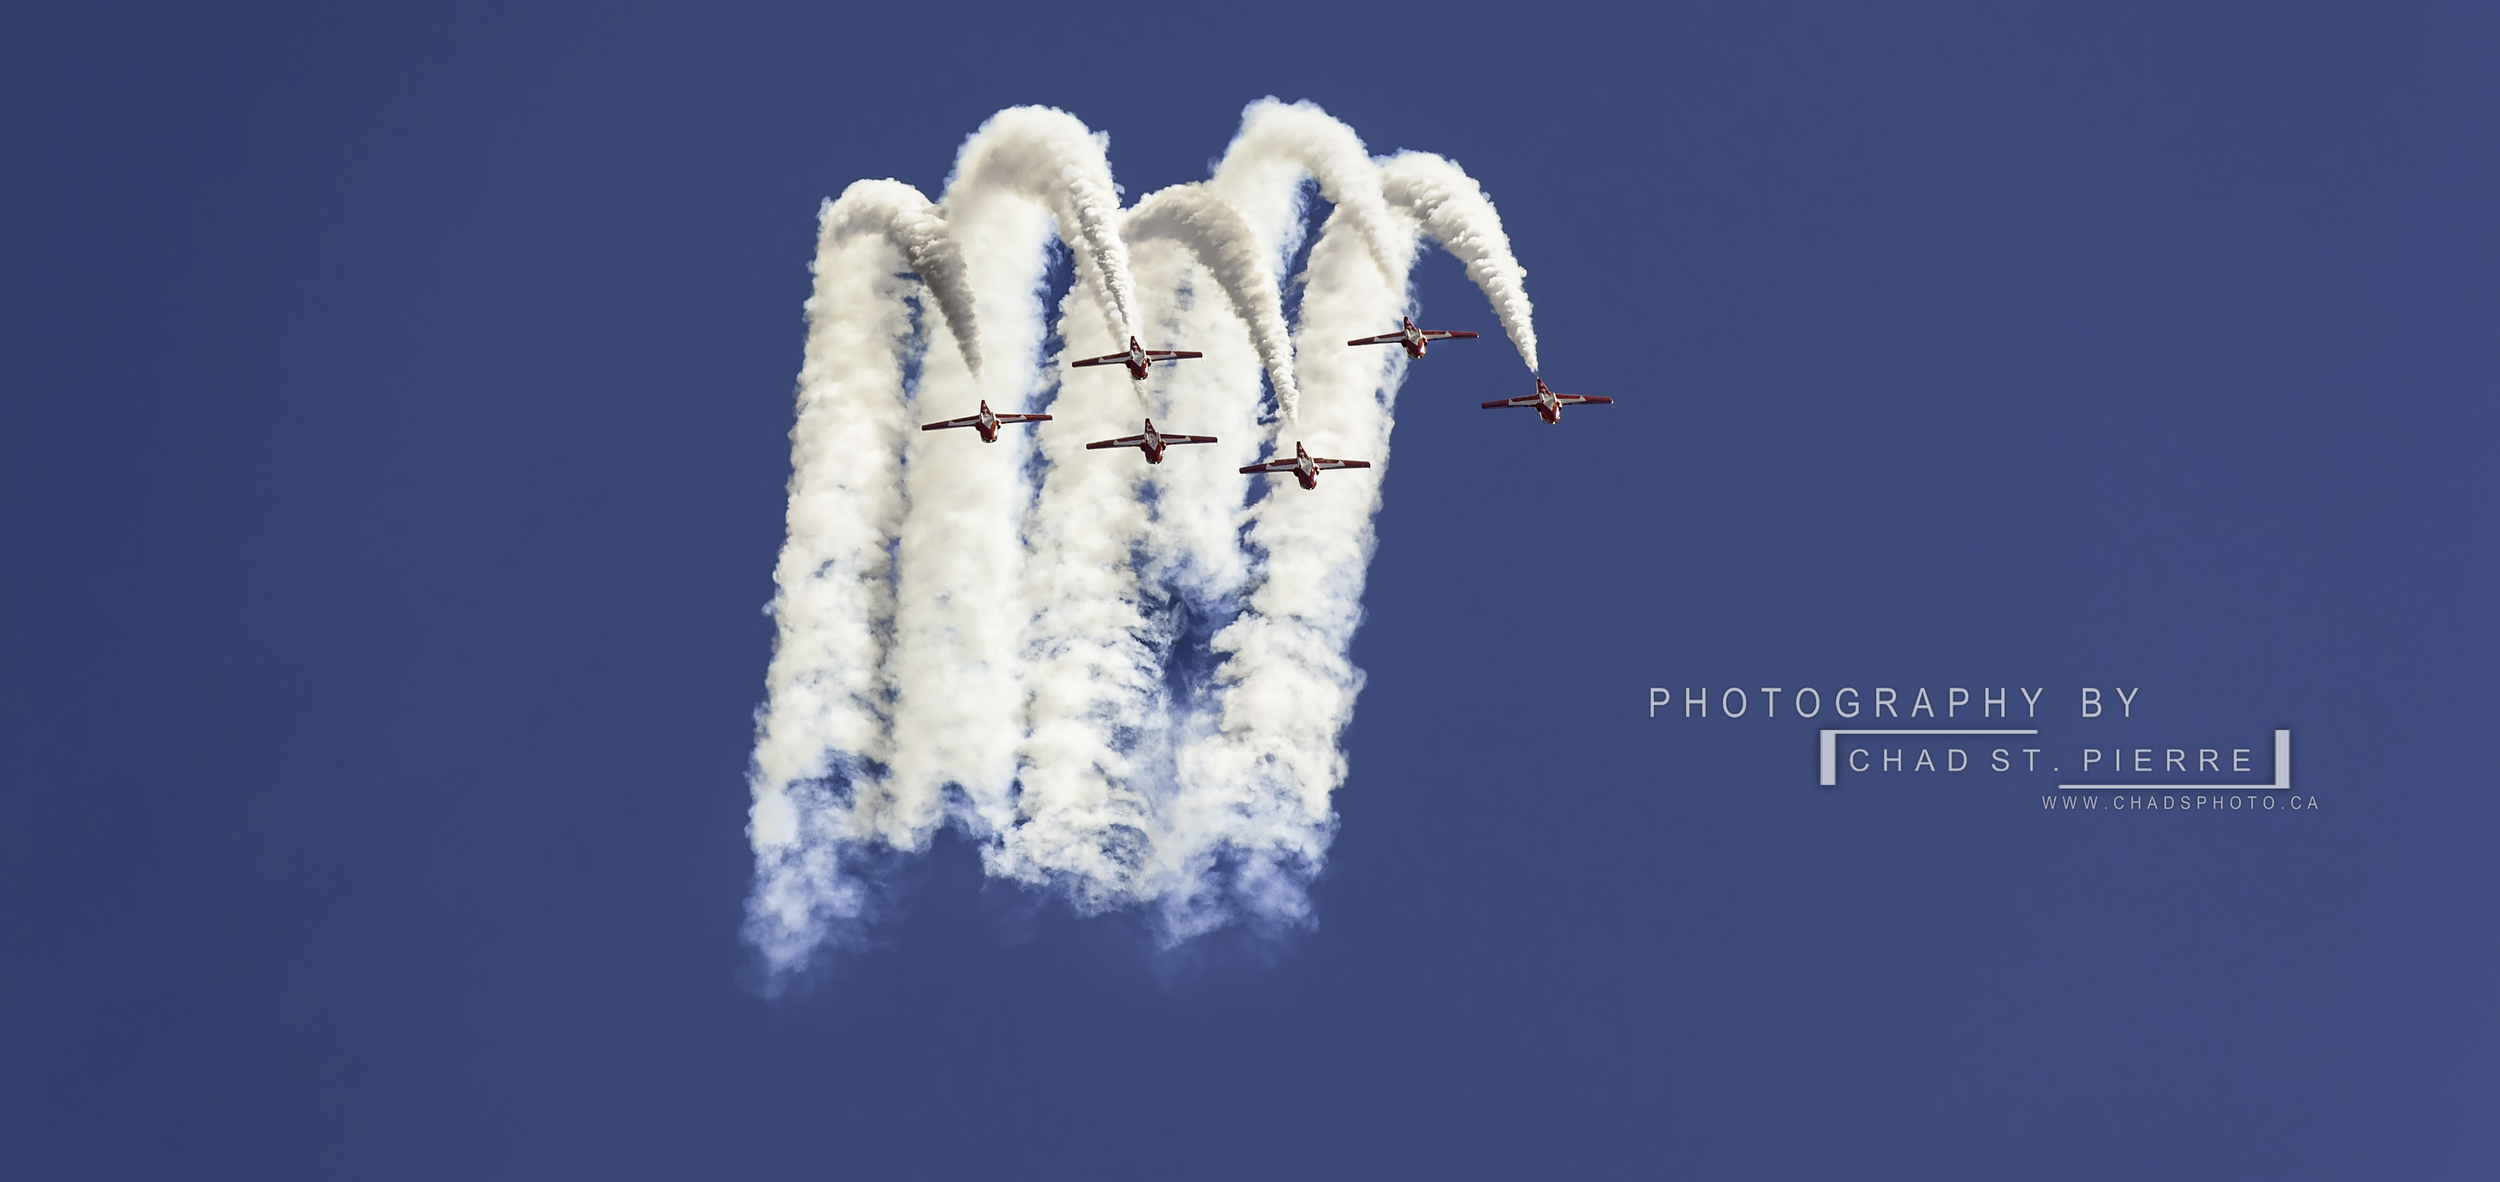 Snowbirds Demonstration Team